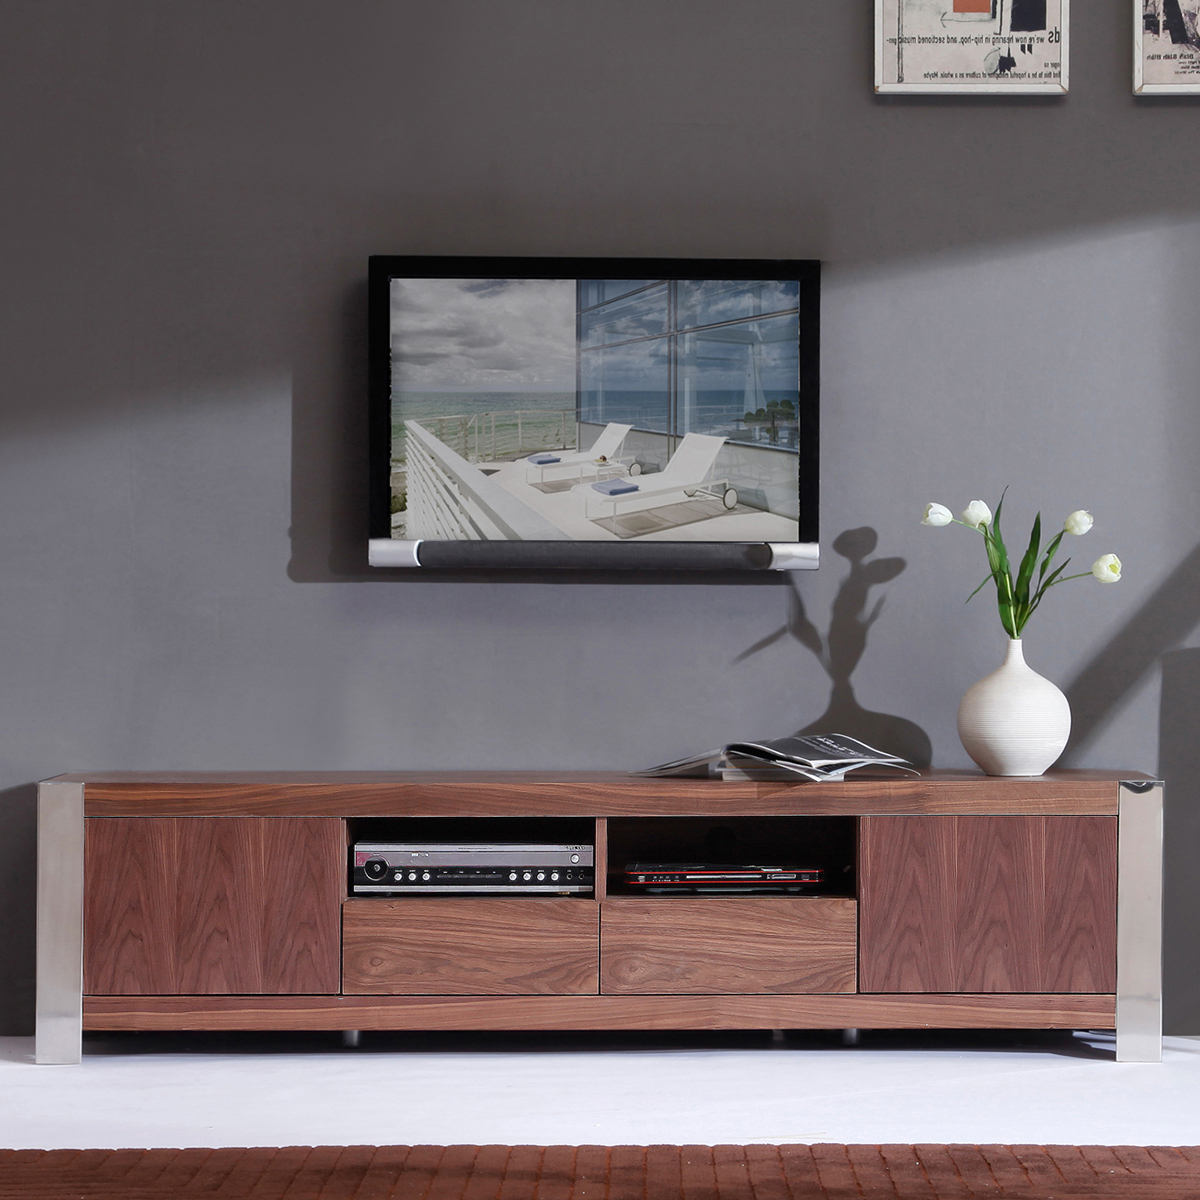 90 Inch Long Tv Stand 60 Entertainment Center With Hutch 80 Ikea 100 Regarding Famous 80 Inch Tv Stands (View 8 of 20)